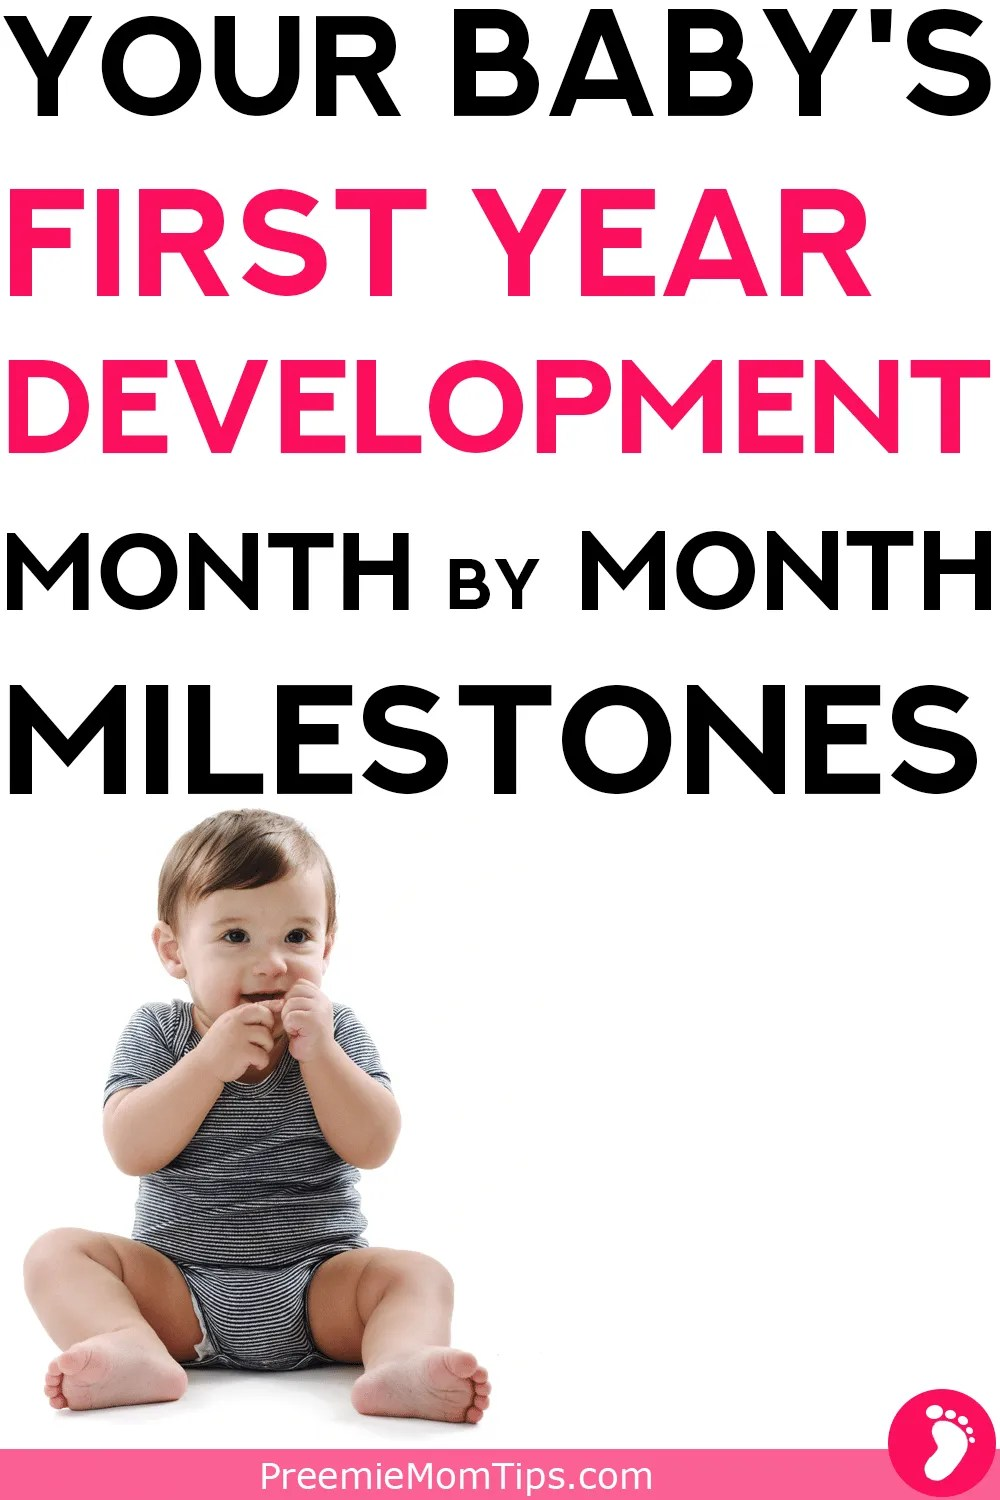 When will your baby talk, crawl, walk? Track your baby's development from newborn up to 12 months old with this complete milestone development guide!